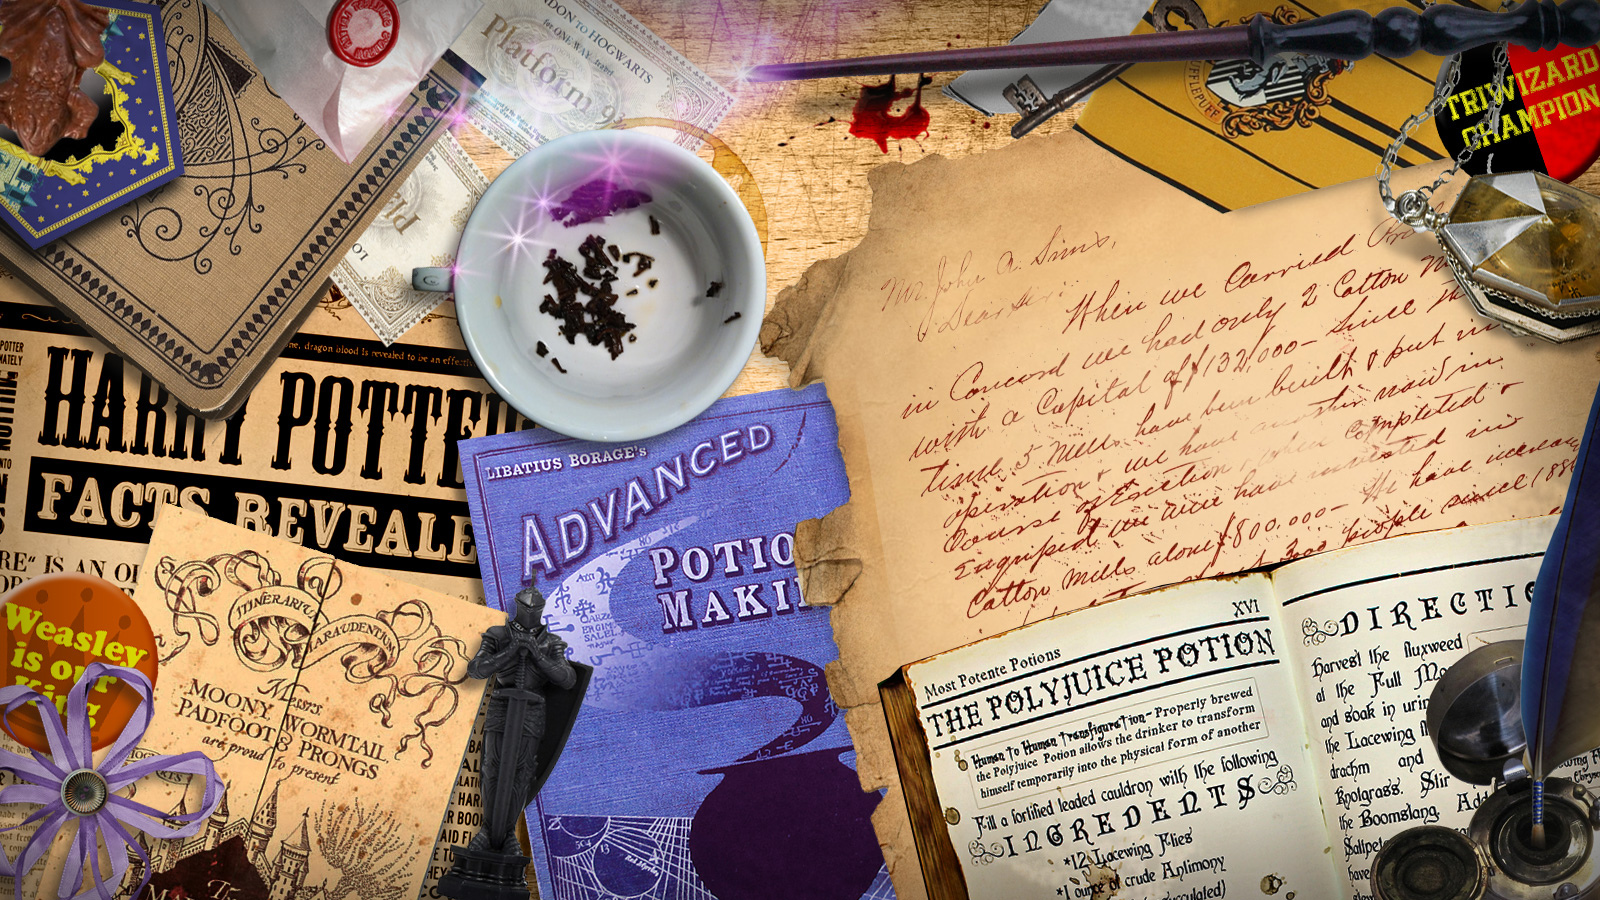 Gmail android theme background - Harry Potter Desk Wallpaper And Gmail Theme